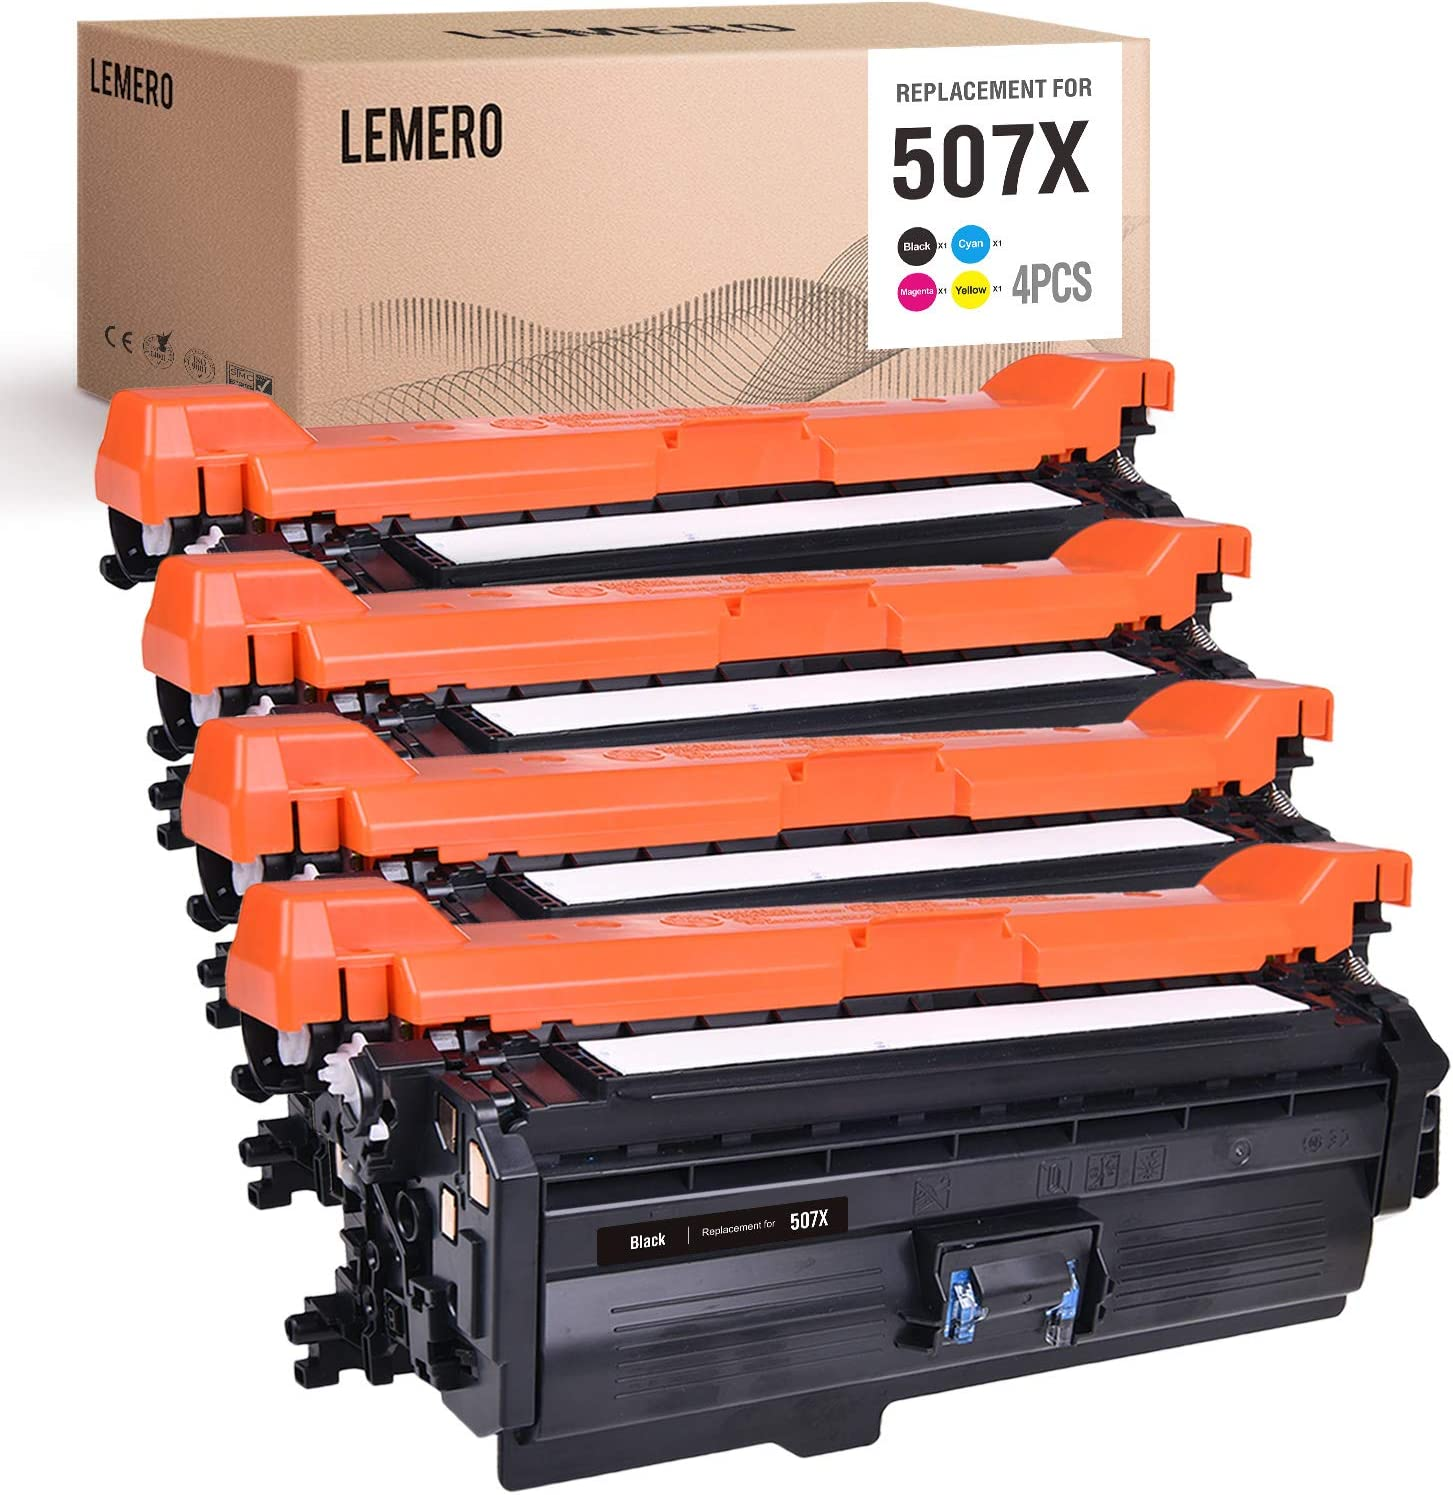 LEMERO Compatible Toner Cartridge Replacement for HP 507A 507X CE400X CE401A CE402A CE403A to use with Laserjet Enterprise 500 Color M551n M570dn M551dn (Black, Cyan, Magenta, Yellow, 4-Pack)